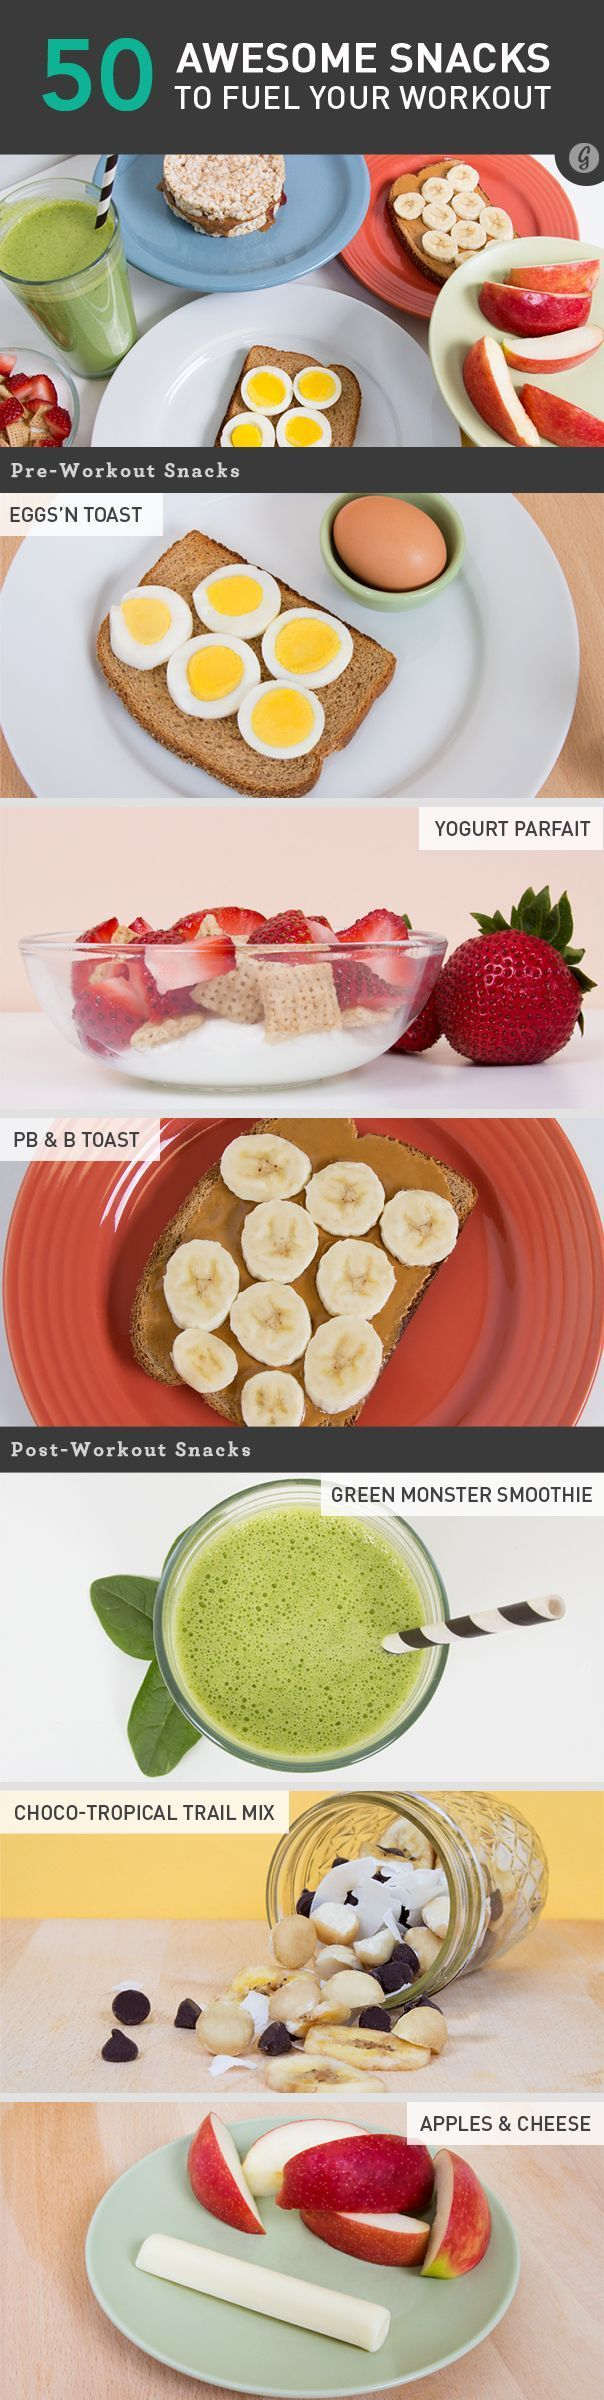 50 Pre- and Post- Workout Snack Ideas #healthy #energy